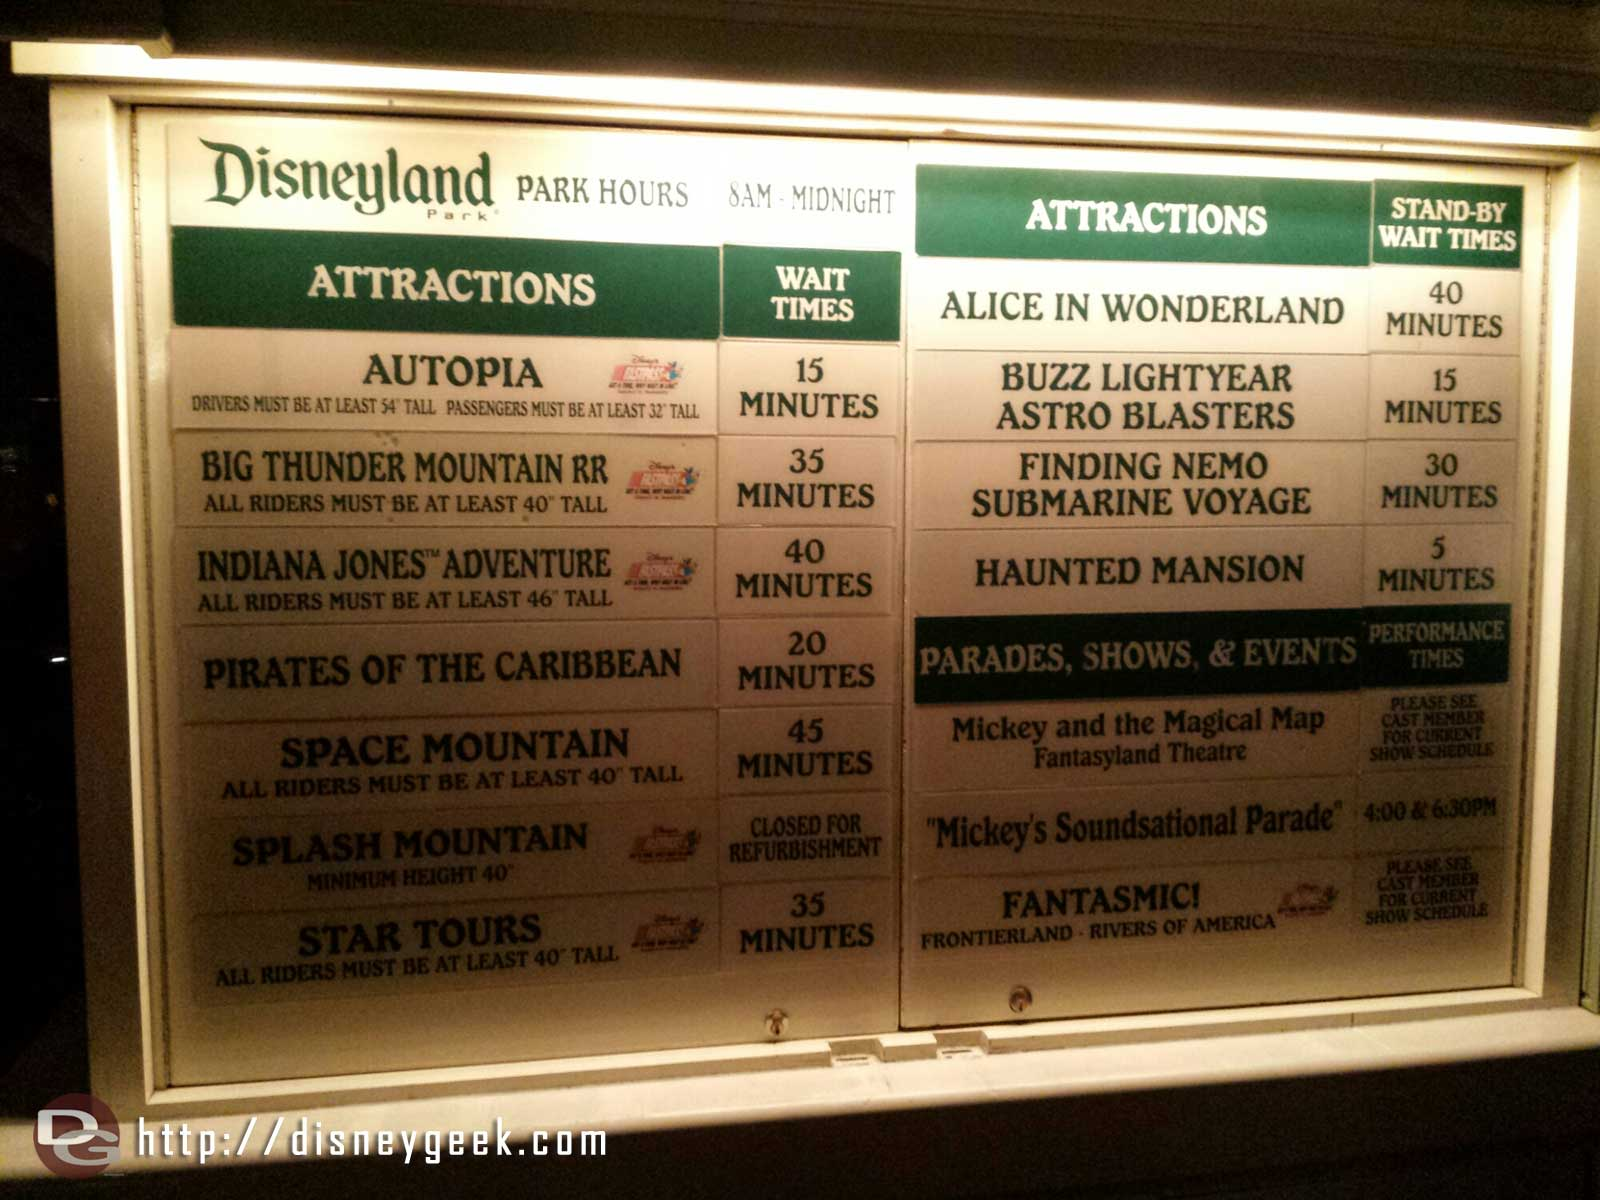 #Disneyland waits as of 8:25pm